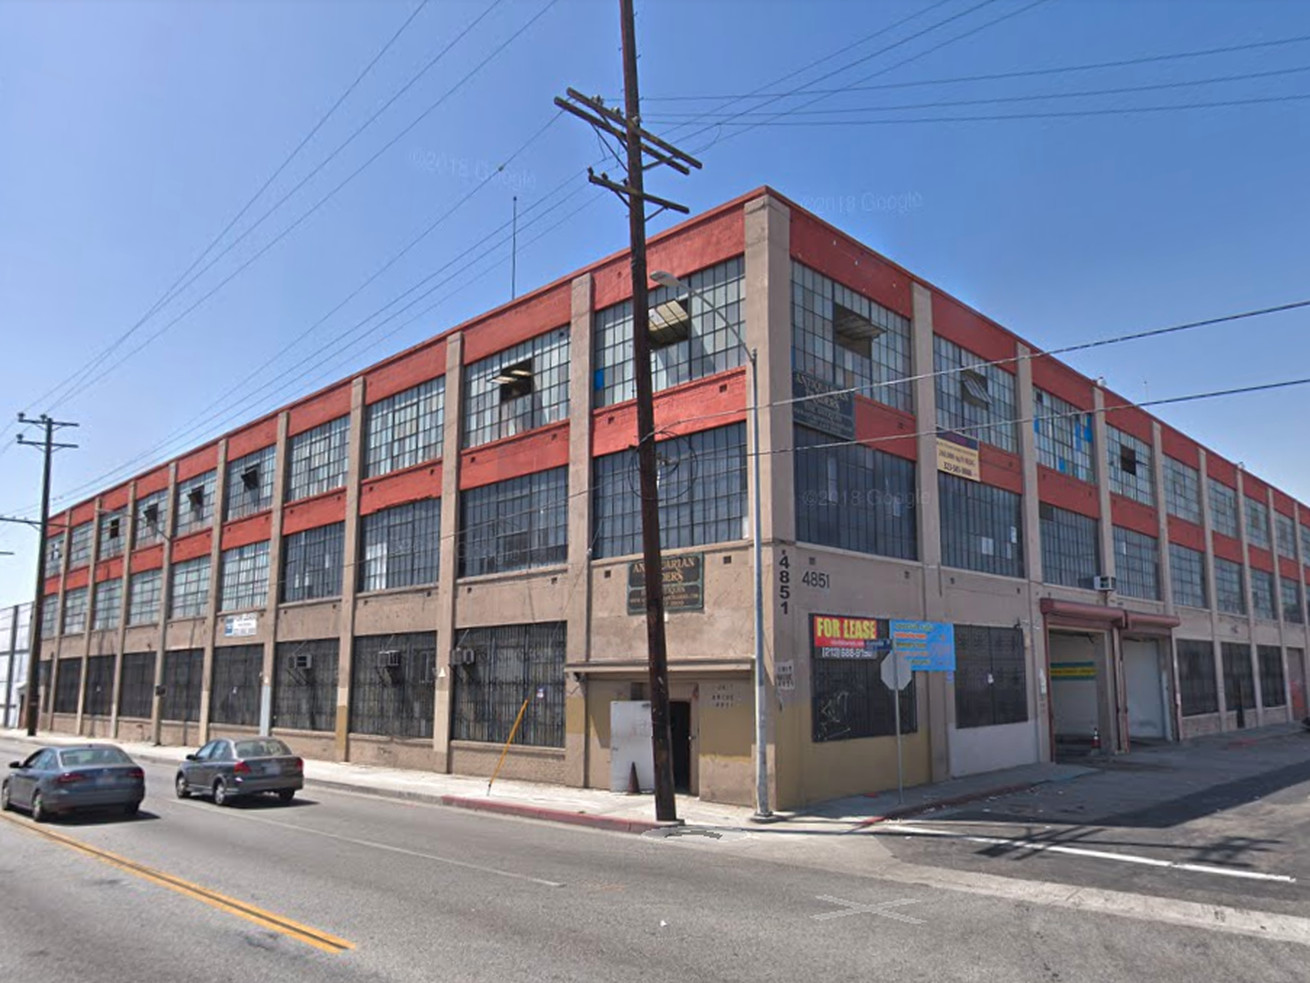 The warehouse at 4851 South Alameda Street that could be converted.